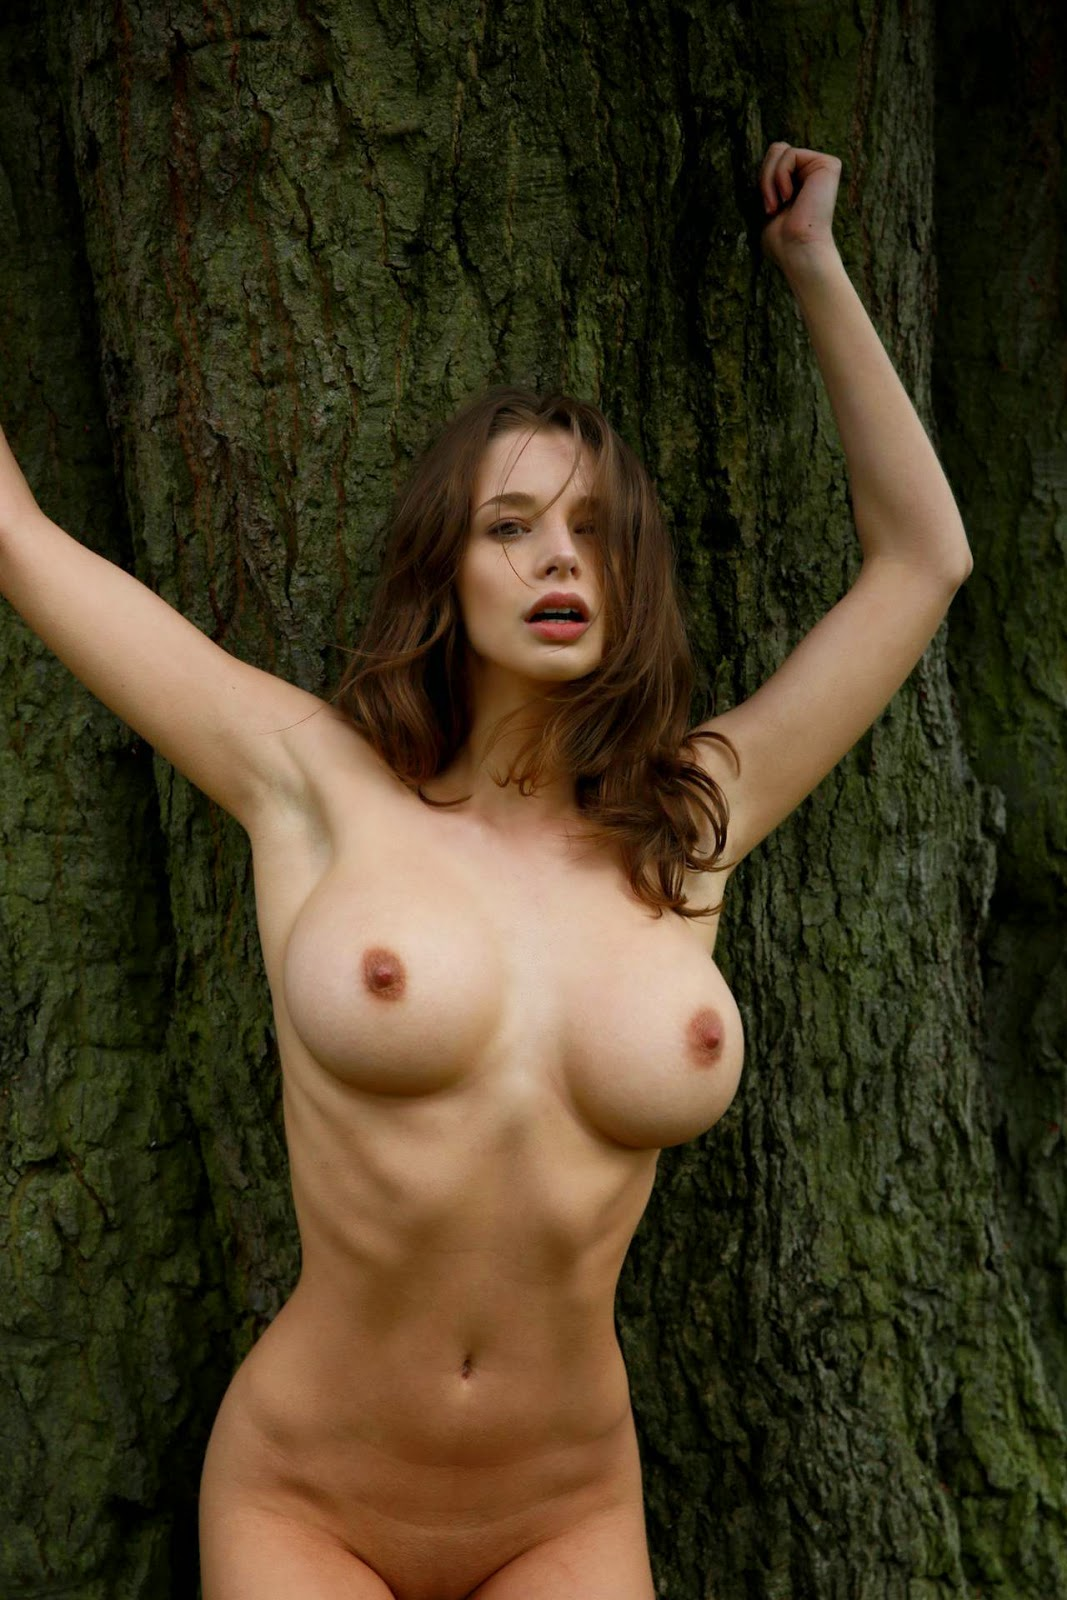 emily shaw nude